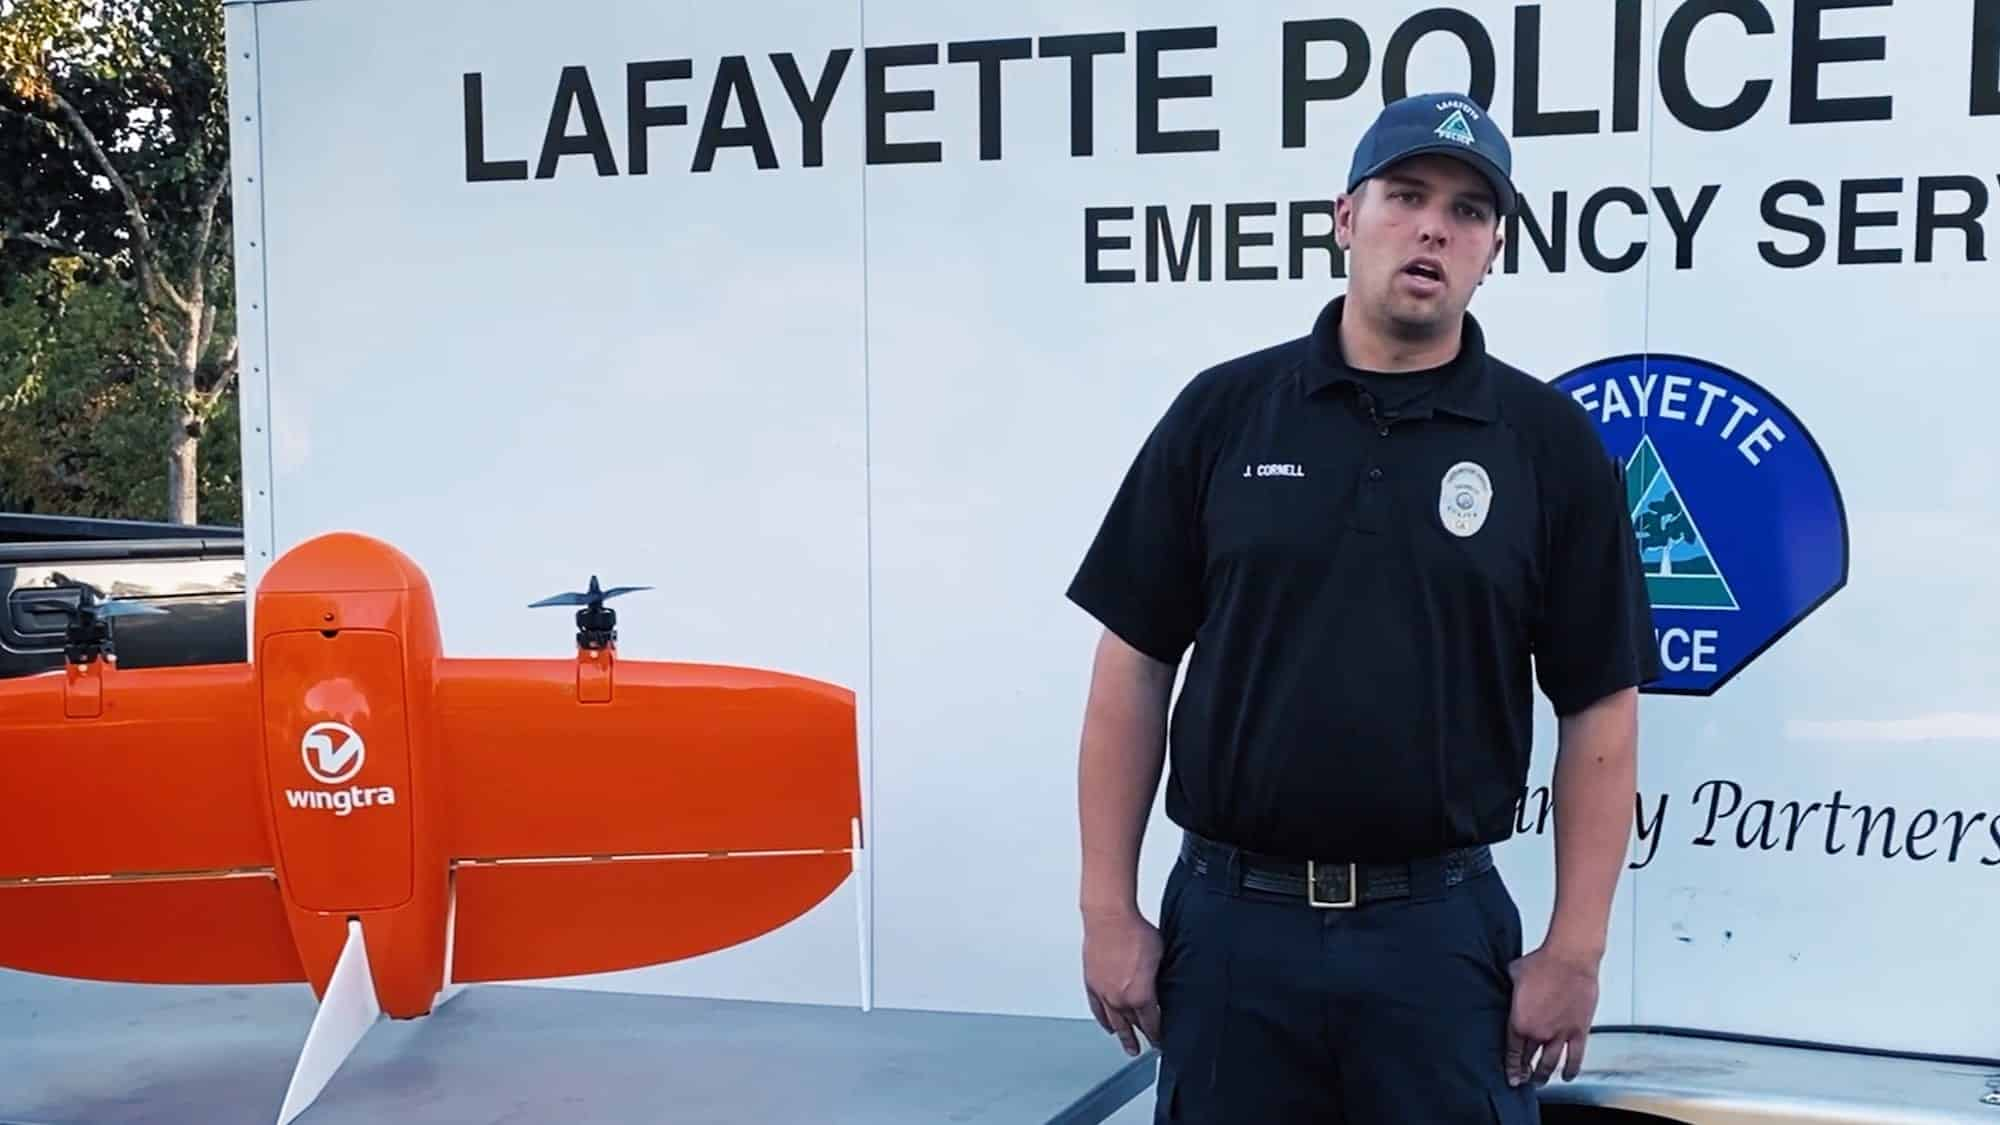 Lafayette Police uses Wingtra VTOL drone to map area destroyed by wildfires